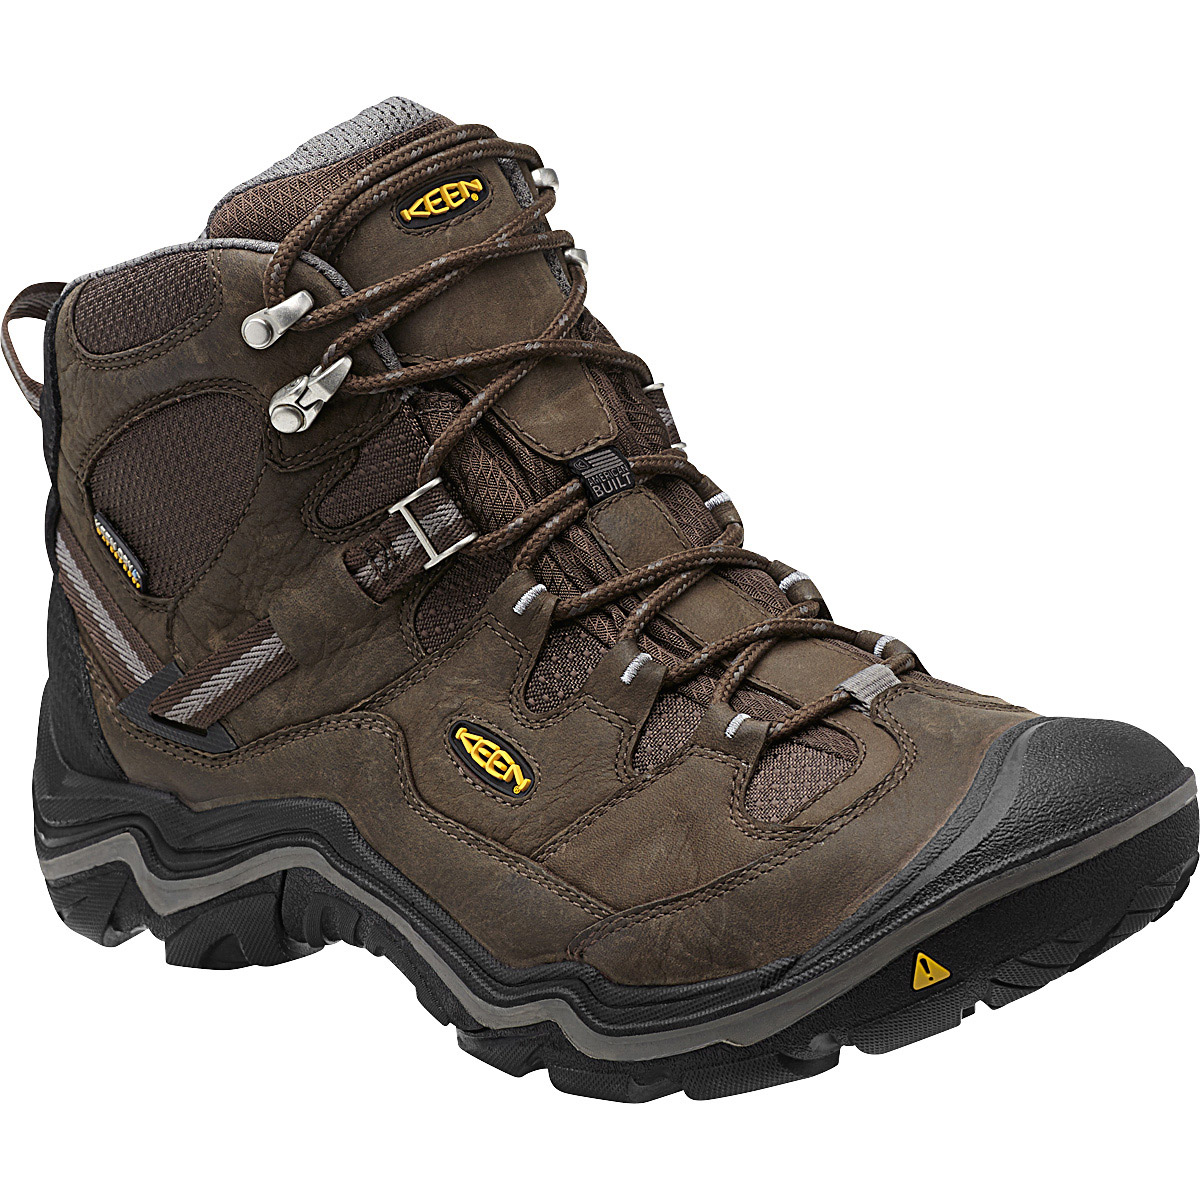 6be9a55746c Men's Boots: Hiking Boots, Waterproof Workboots & More | Bob's Stores